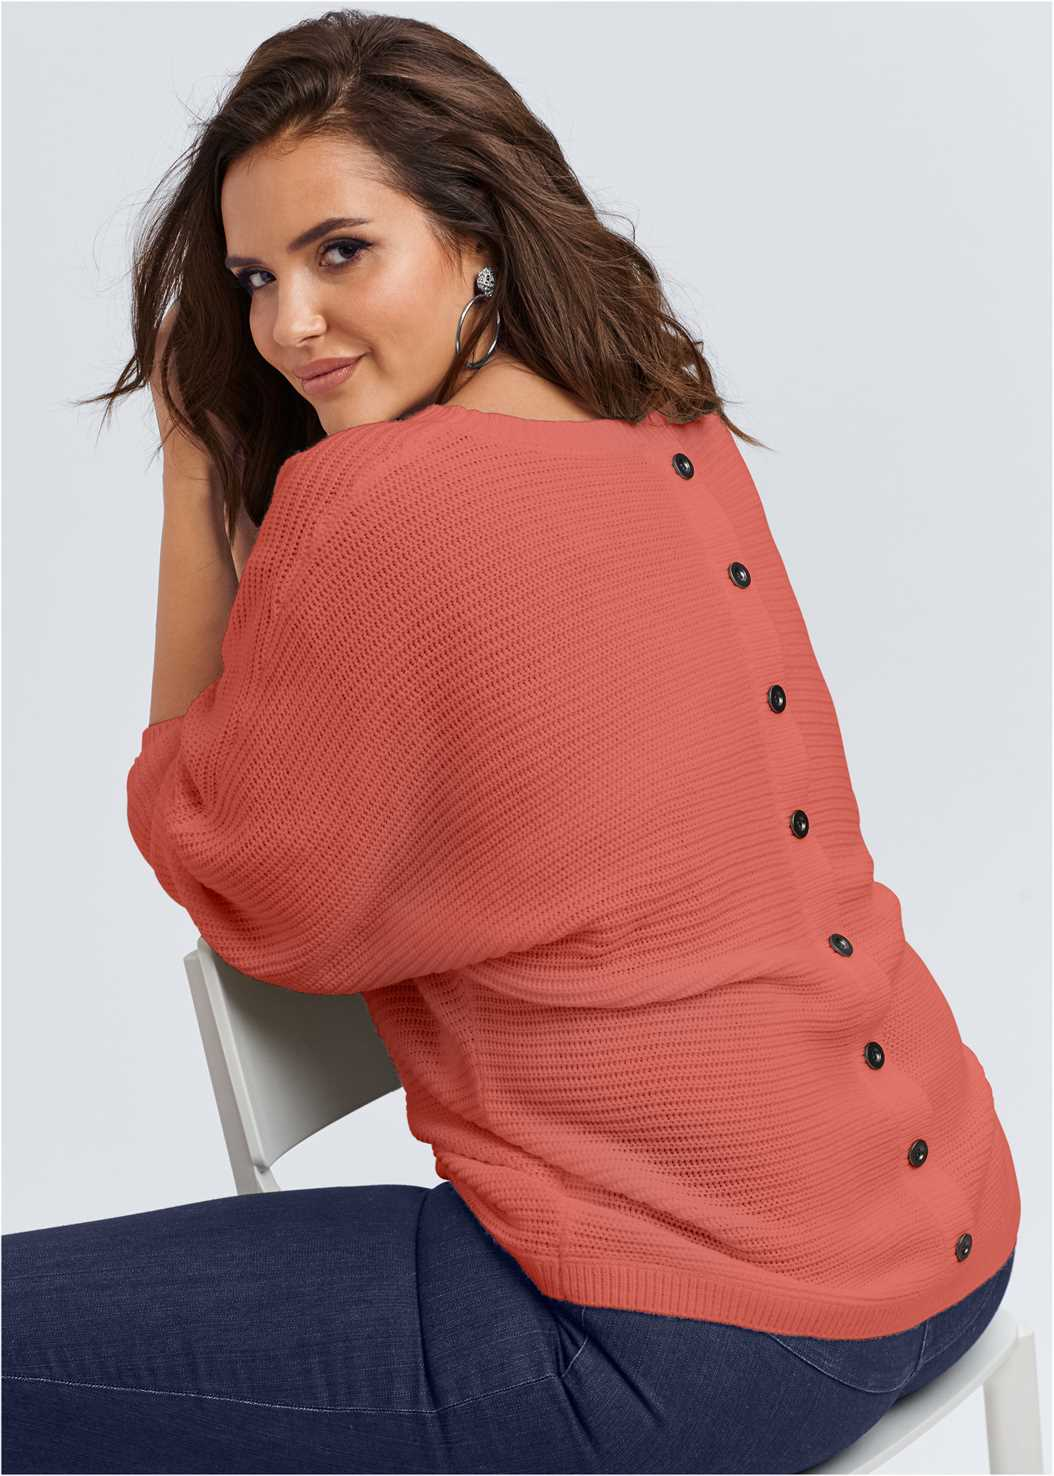 Button Back Detail Sweater,Mid Rise Slimming Stretch Jeggings